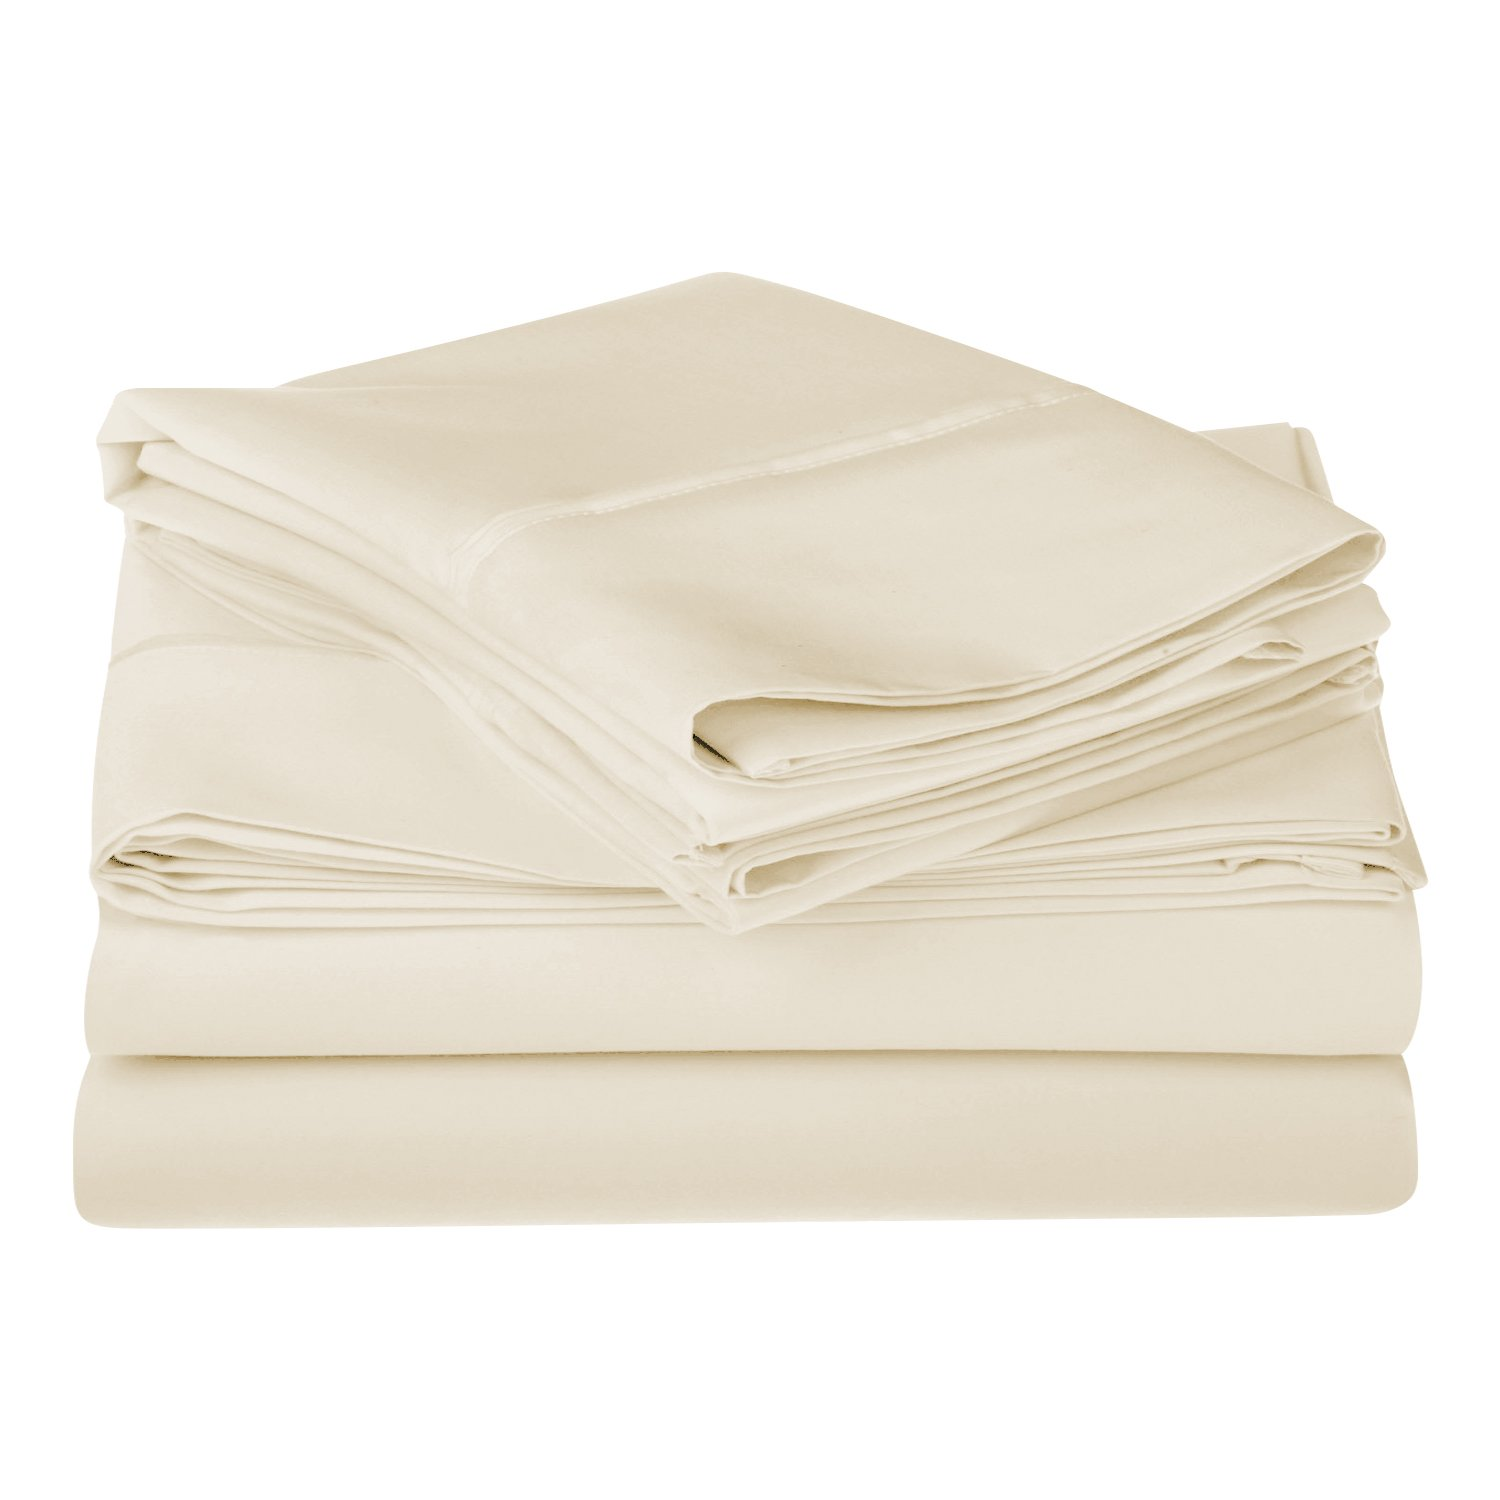 (California King, Ivory) 1200 Thread Count 100% Premium Long-Staple Combed Cotton, Single Ply, California King Bed Sheet Set, Solid, Ivory B005TPMFZY California King|アイボリー アイボリー California King